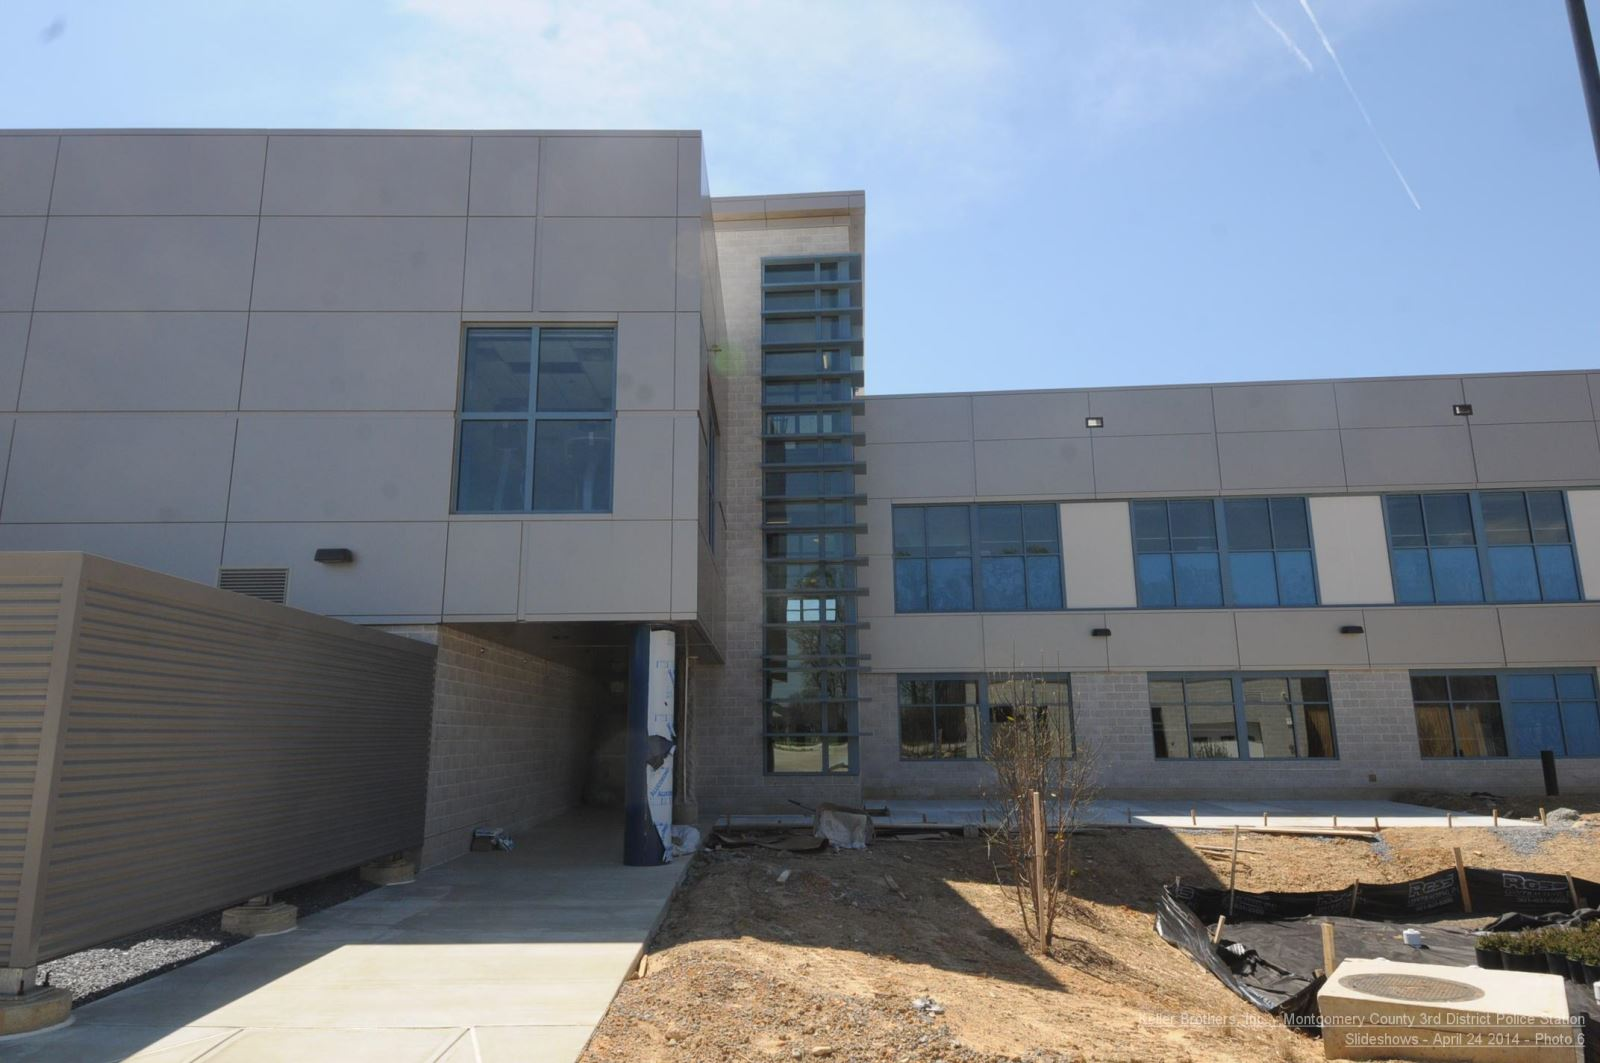 3rd District Police Station - construction picture 5